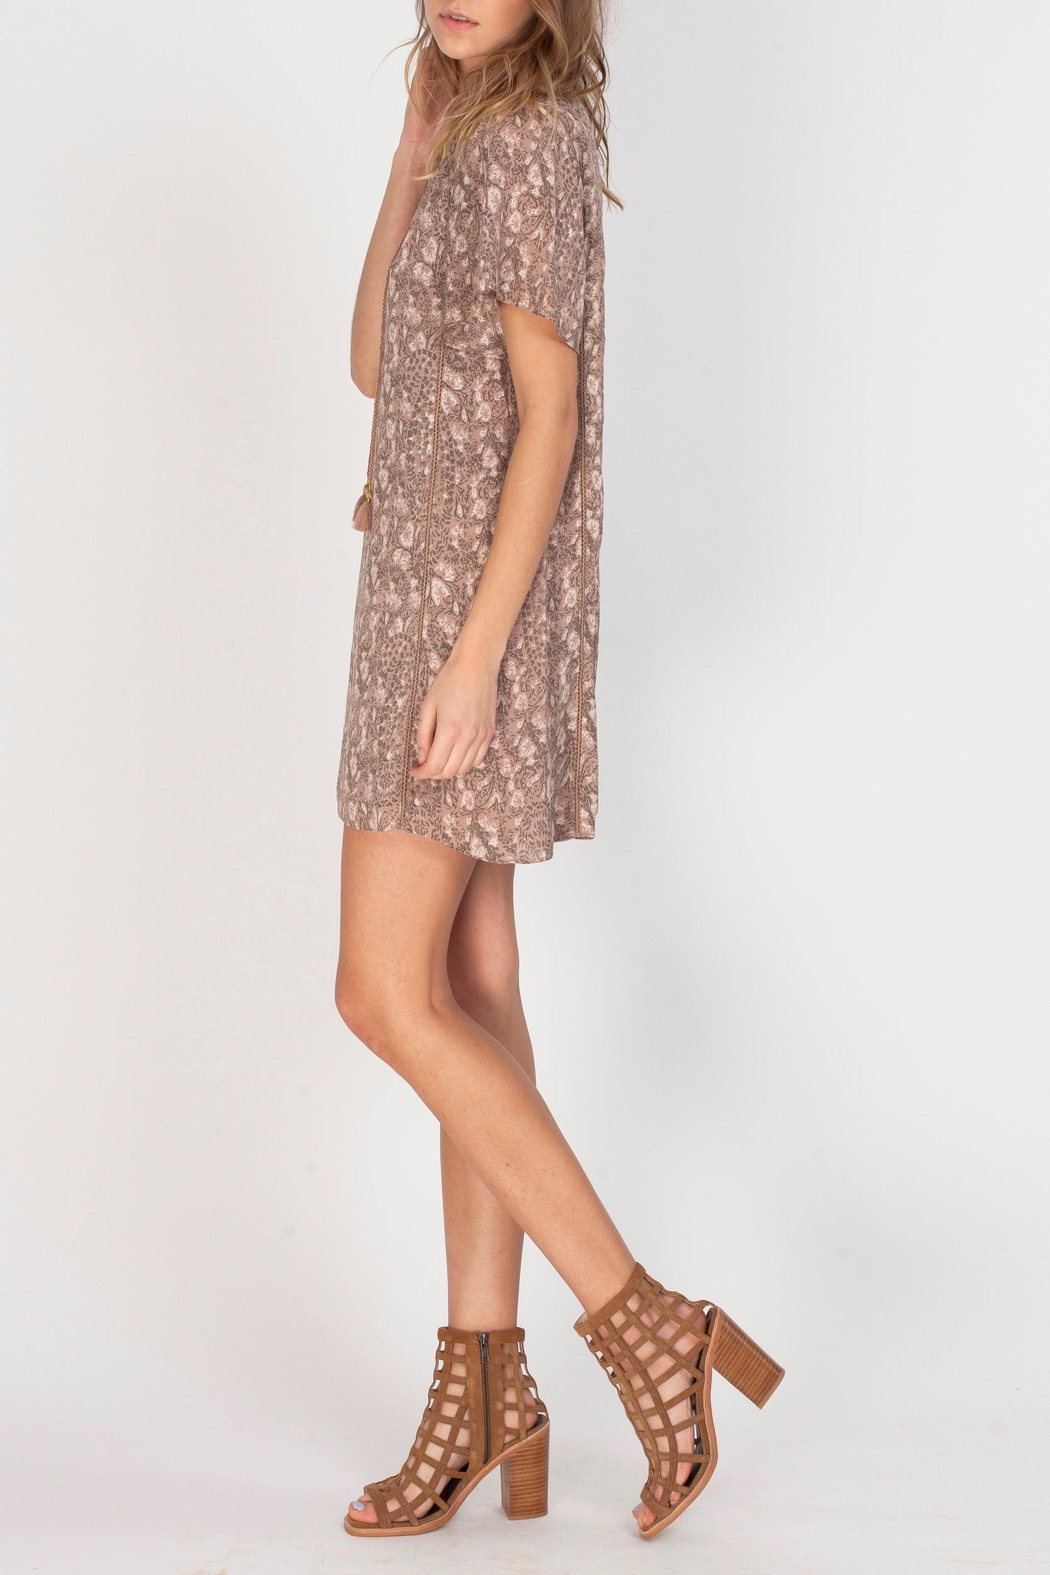 Gentle Fawn V-Neck Printed Dress - Side Cropped Image